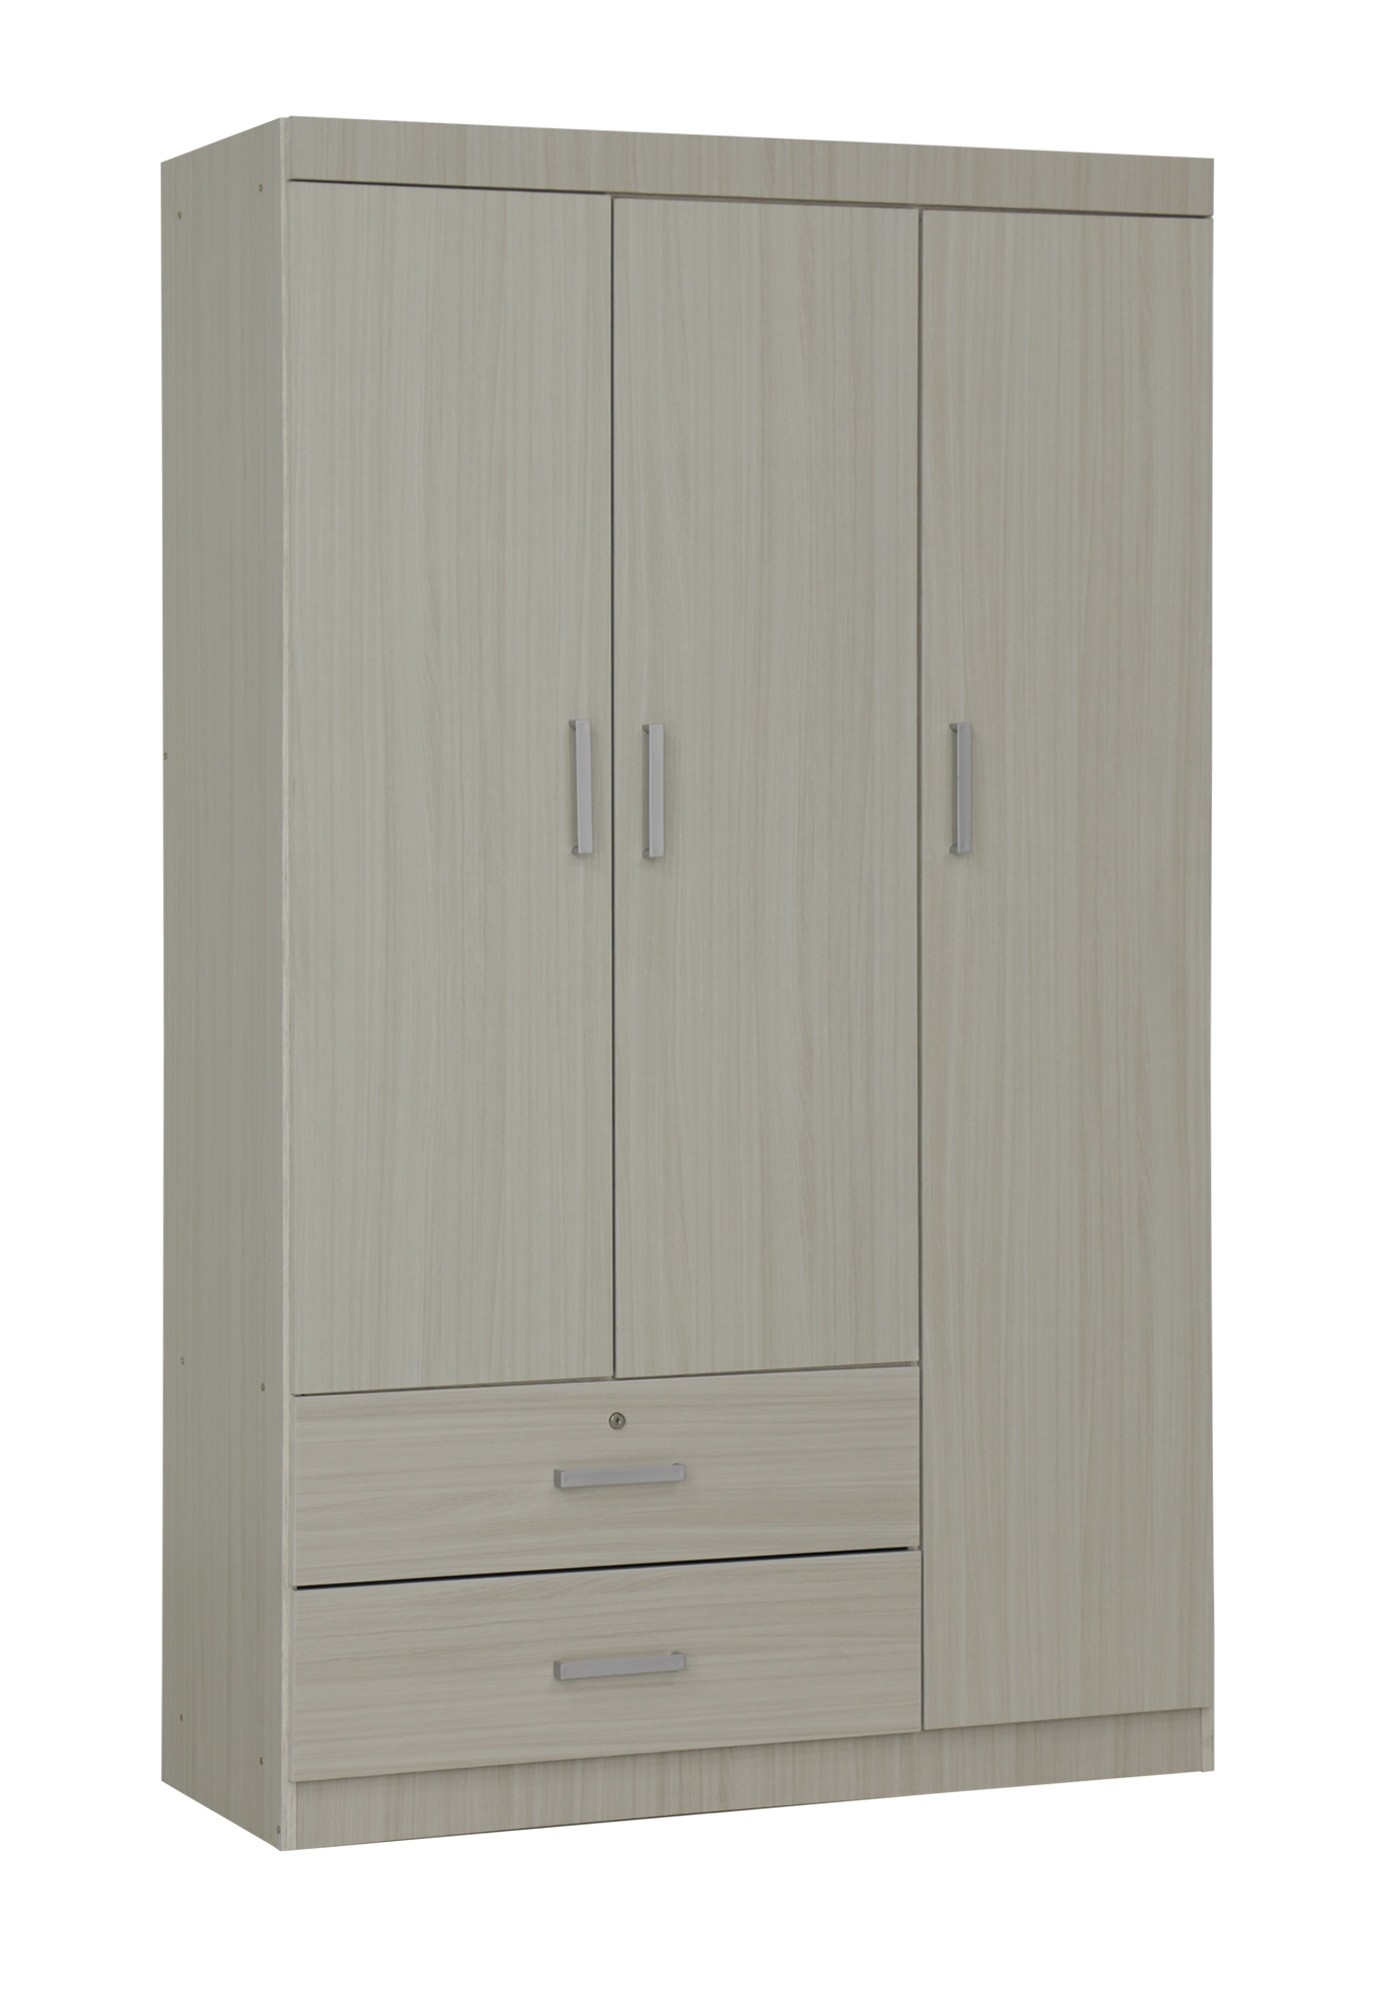 Elifel 3 Door Wardrobe In White Wash | Furniture & Home Décor | Fortytwo In 2 Door White Wash Sideboards (Photo 28 of 30)